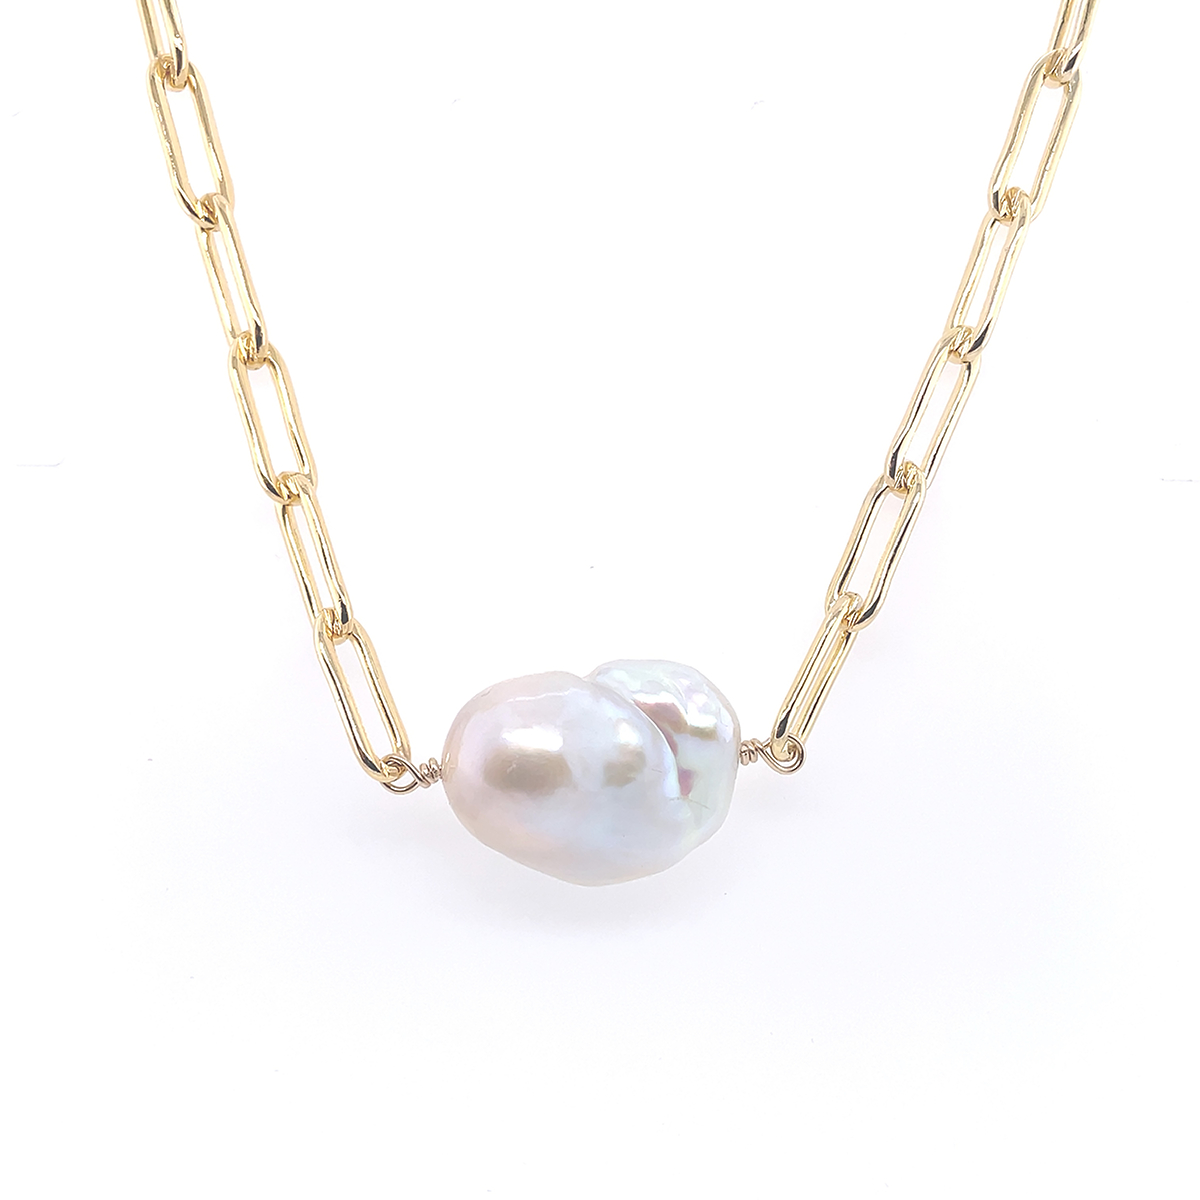 Large East-West Keishi Pearl Necklace